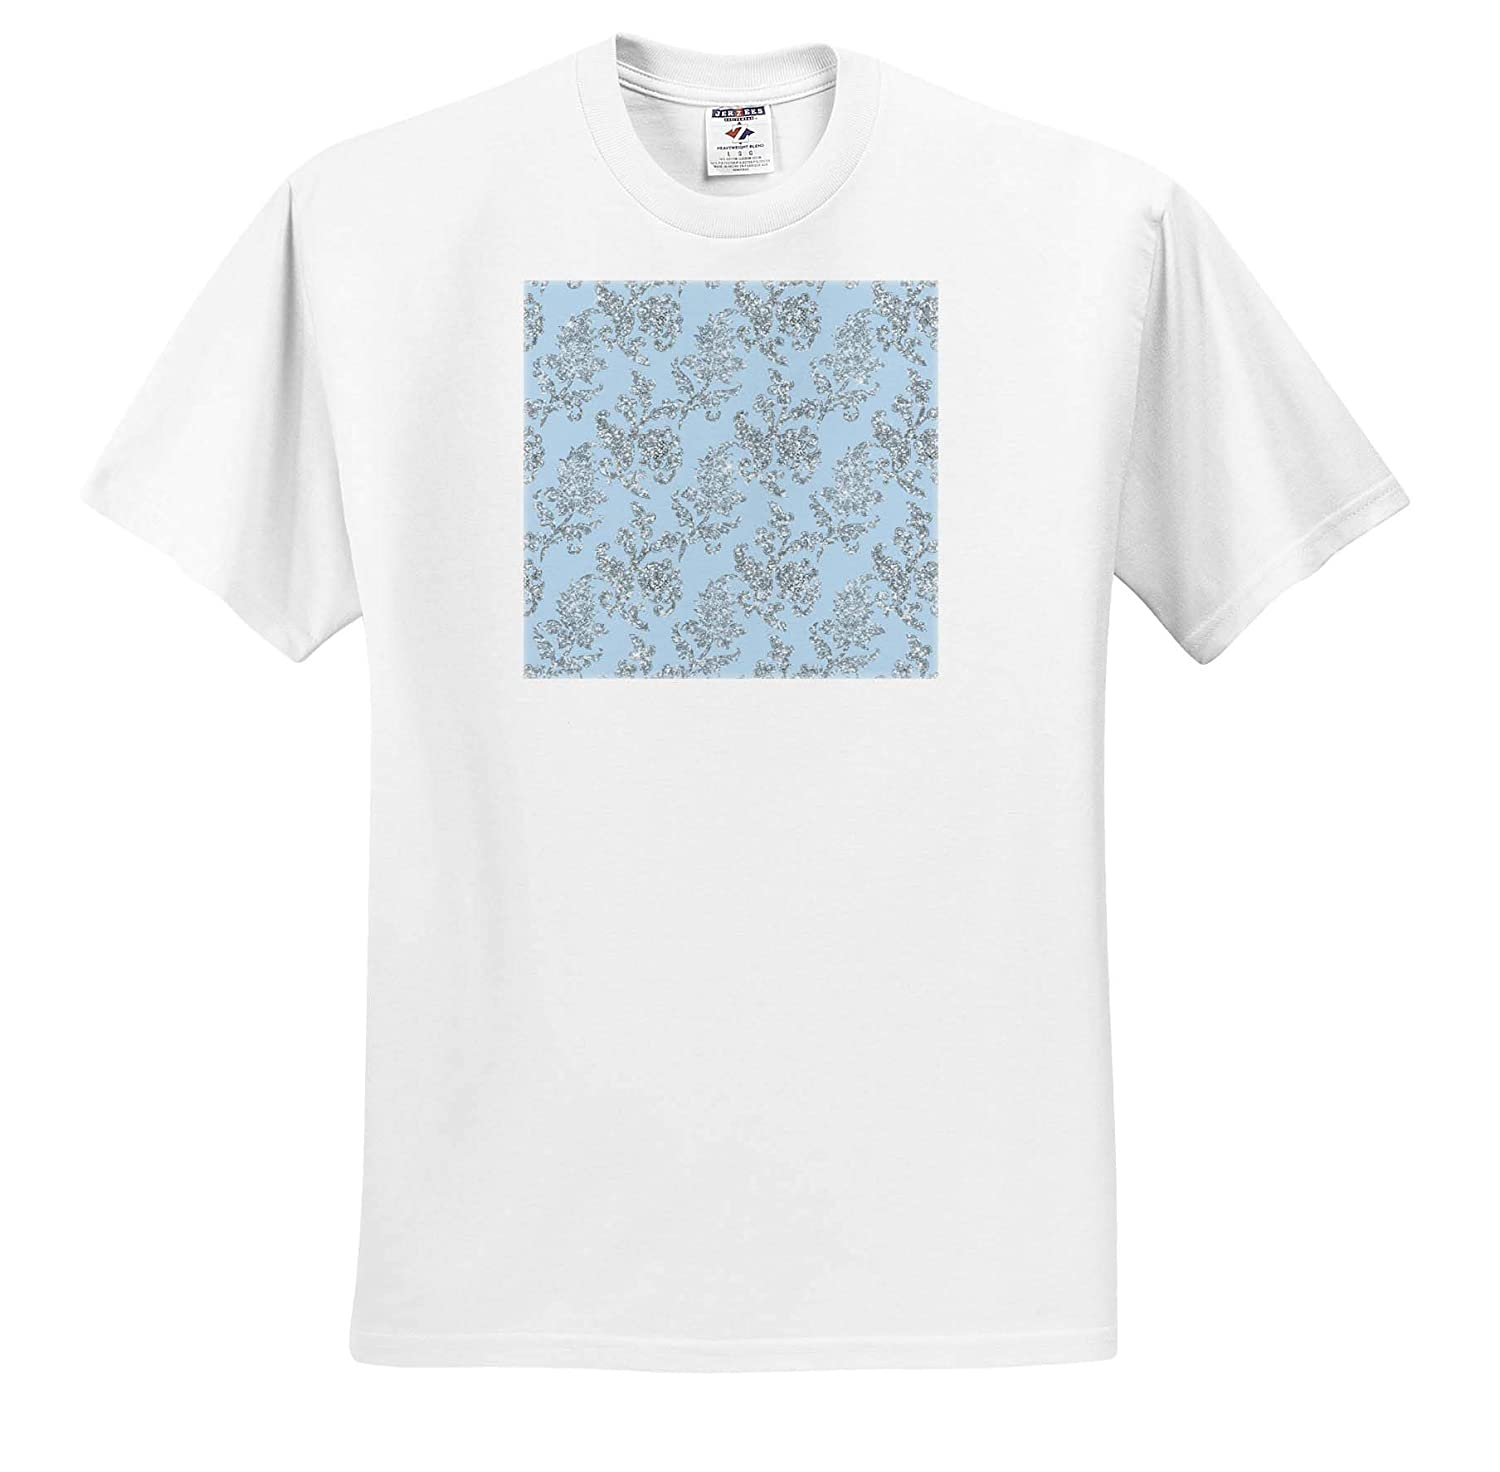 Adult T-Shirt XL Patterns Pretty Light Blue Image of Glitter Floral Vines Pattern 3dRose Anne Marie Baugh ts/_317679